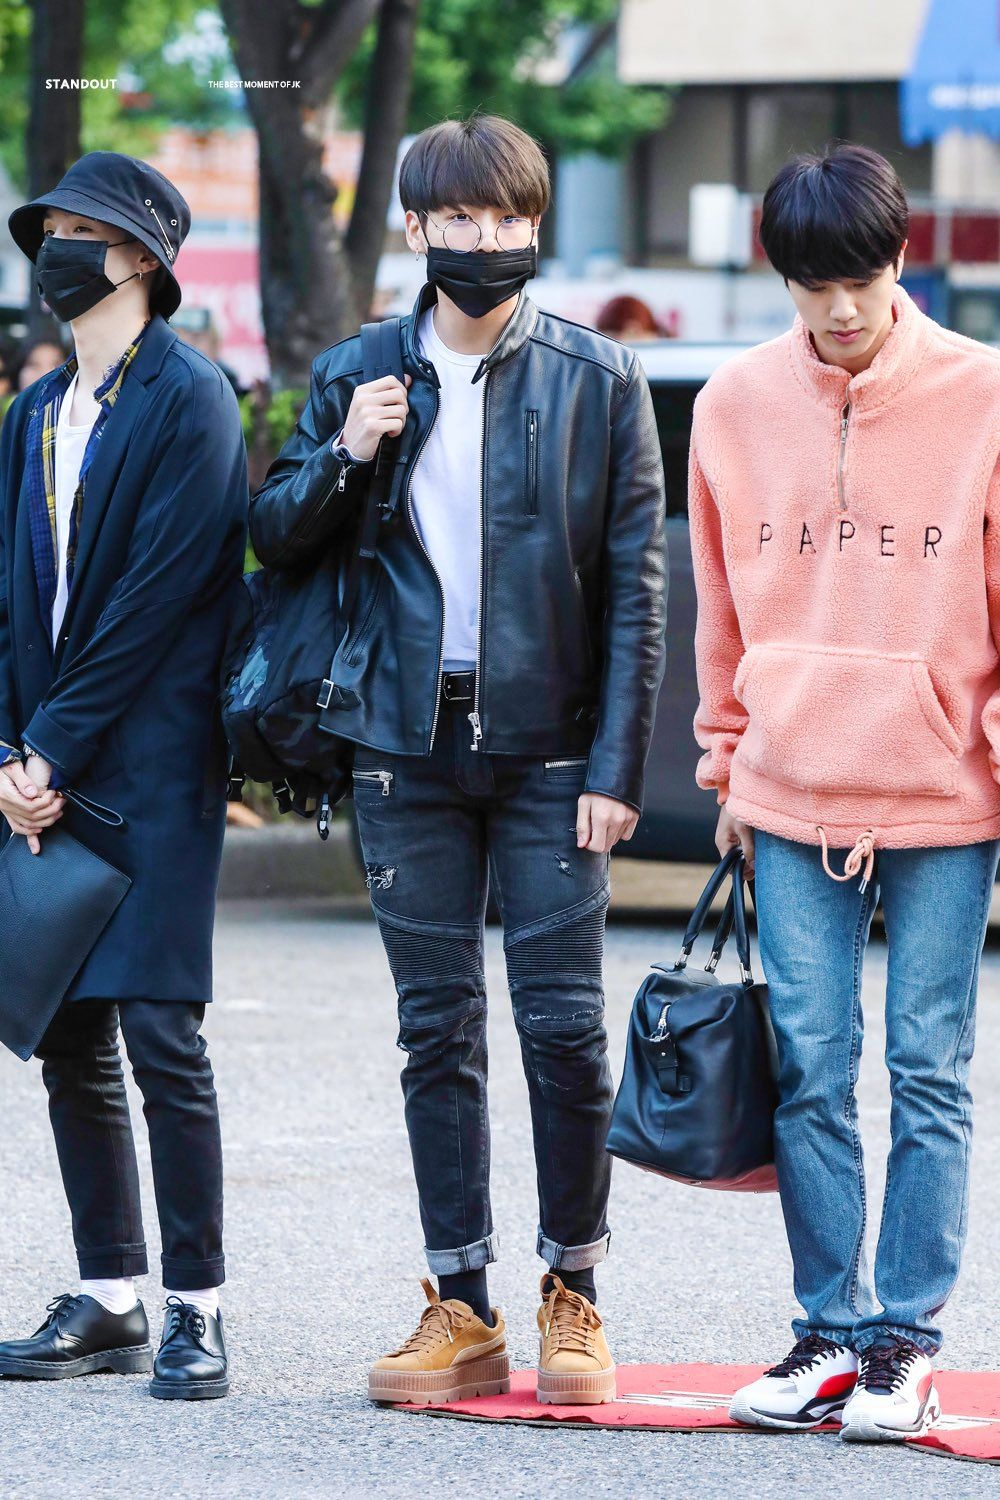 All of them. They're all serving LOOKS | BTS Outfits in 2019